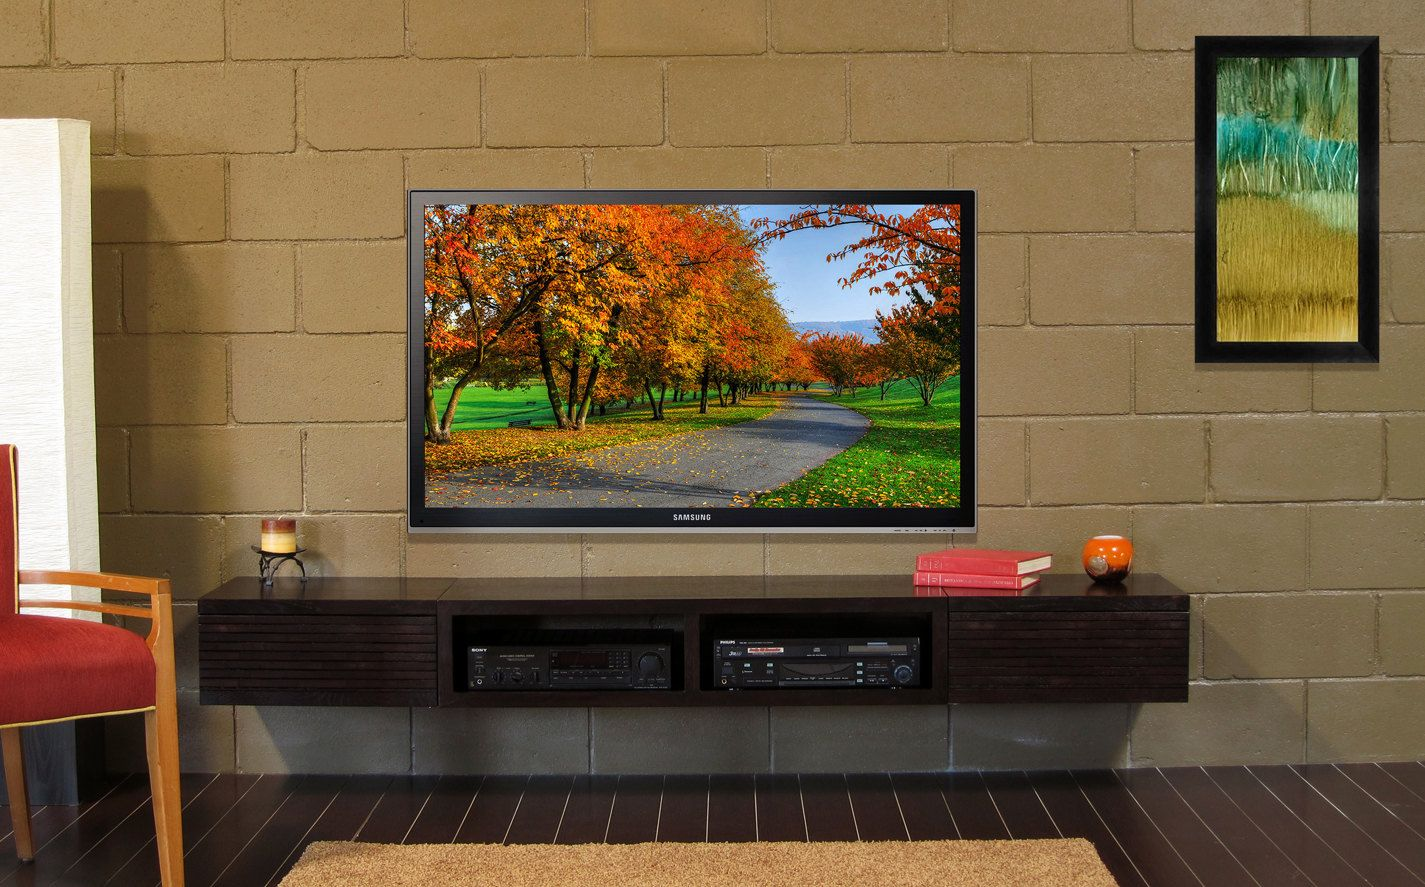 Pin By Tina Steele On Furniture Wall Mount Tv Stand